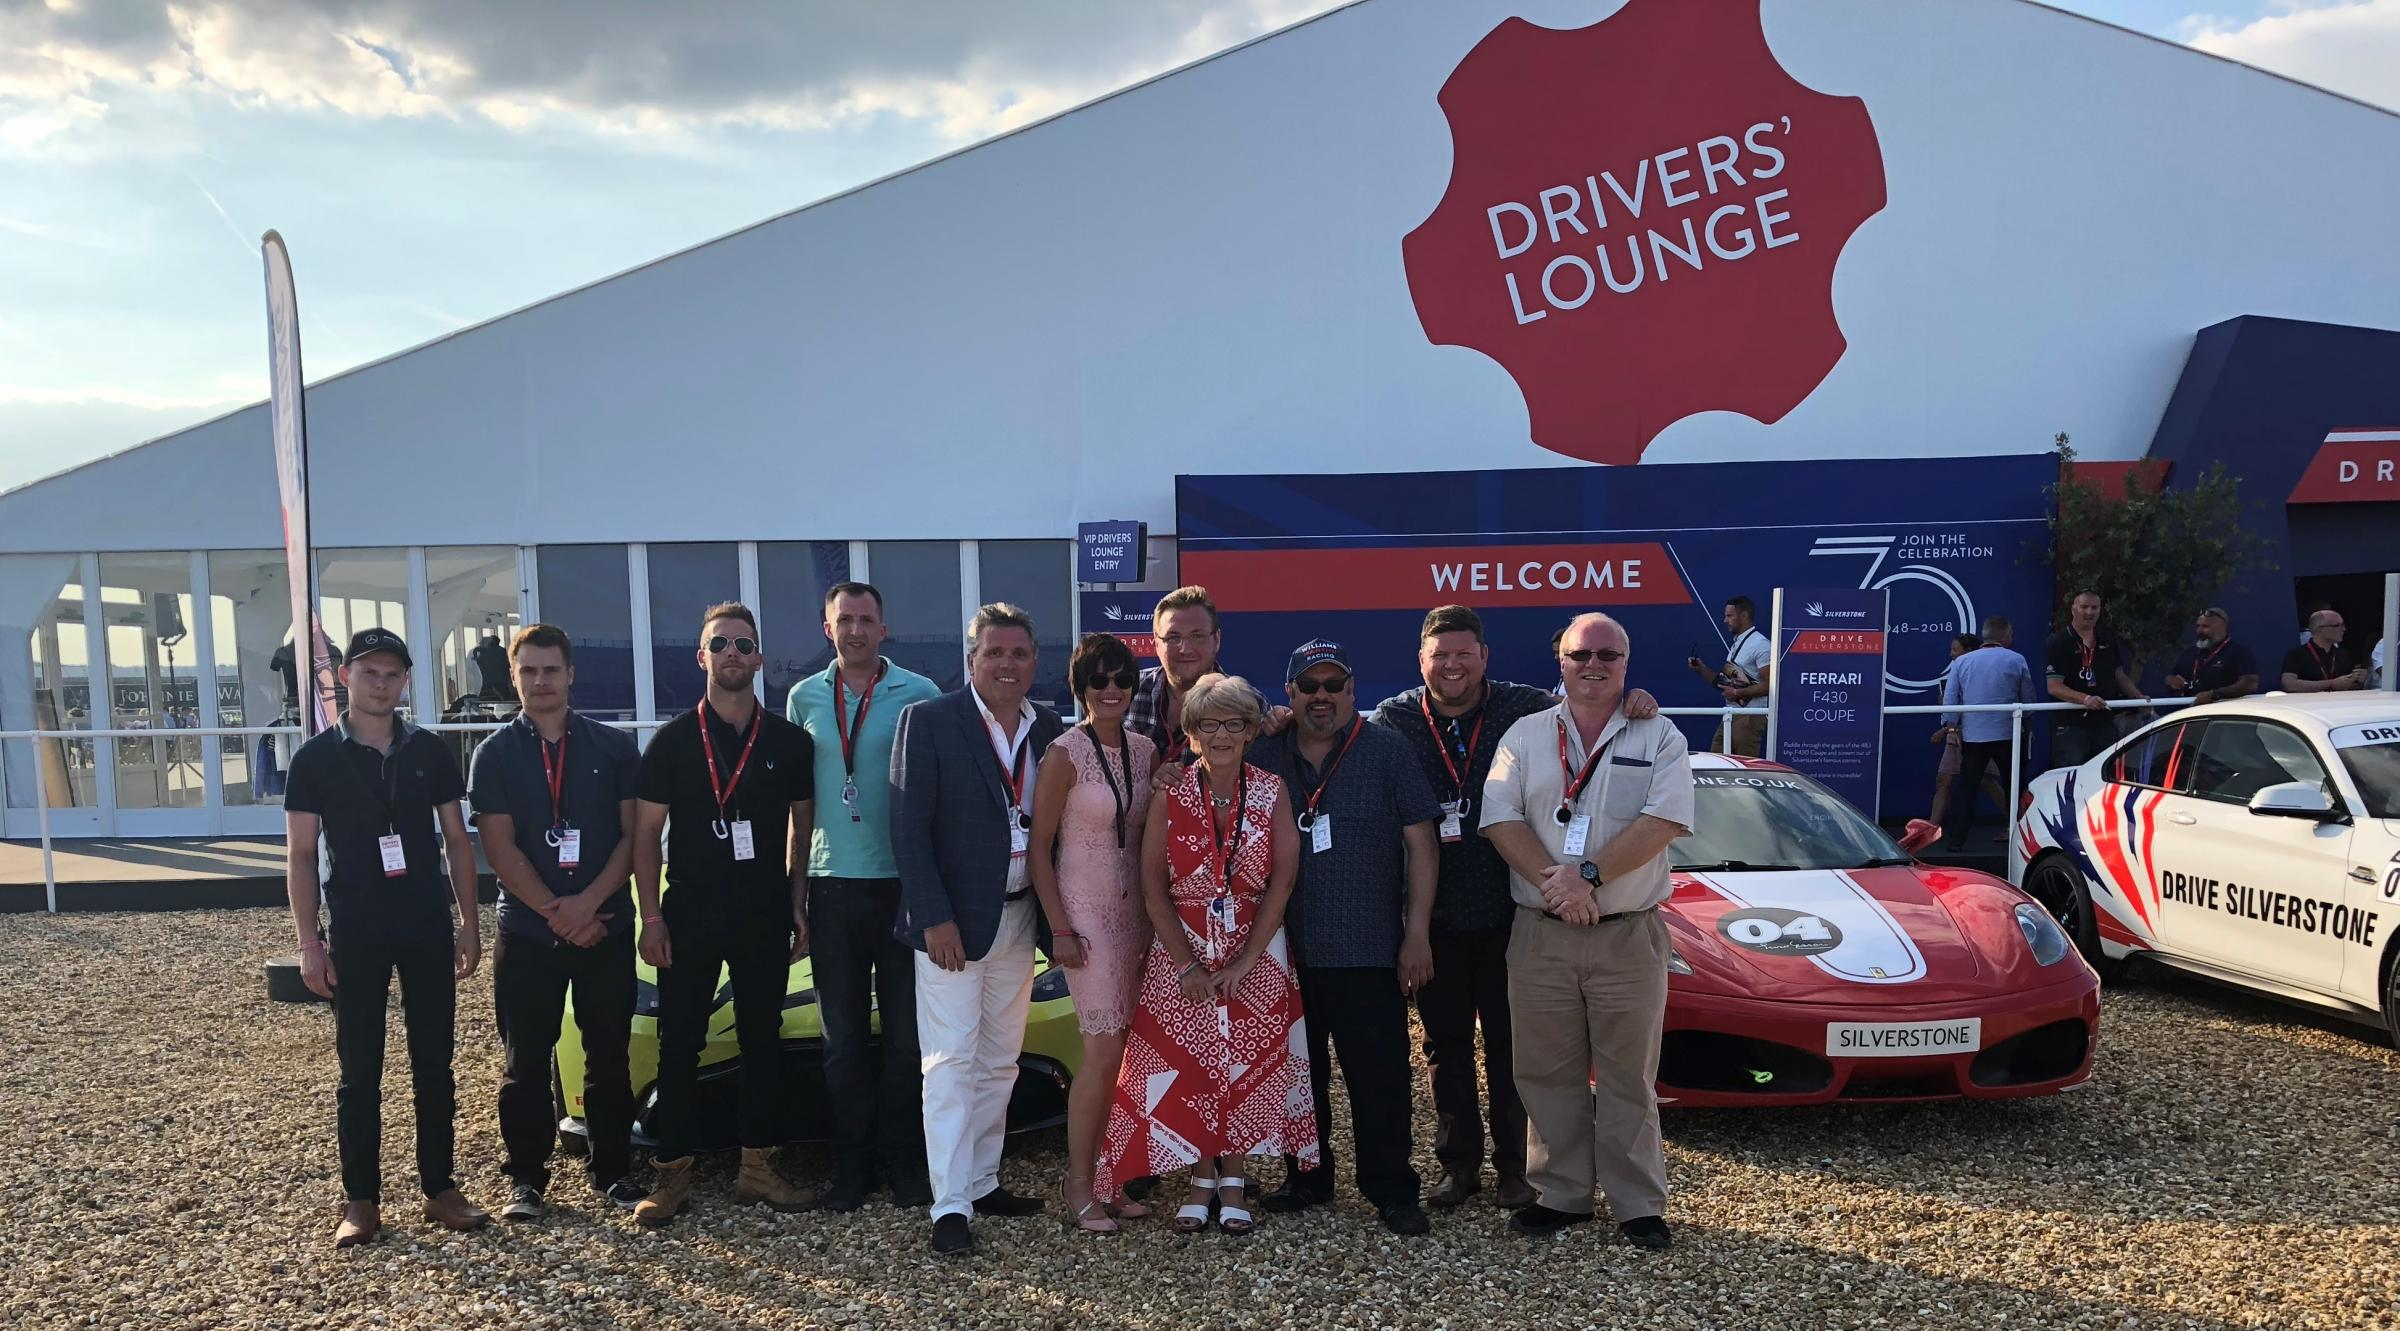 The Fred Rees Garages SKODA team members are pictured outside the Driver's Lounge at the F1 British Grand Prix at Silverstone.